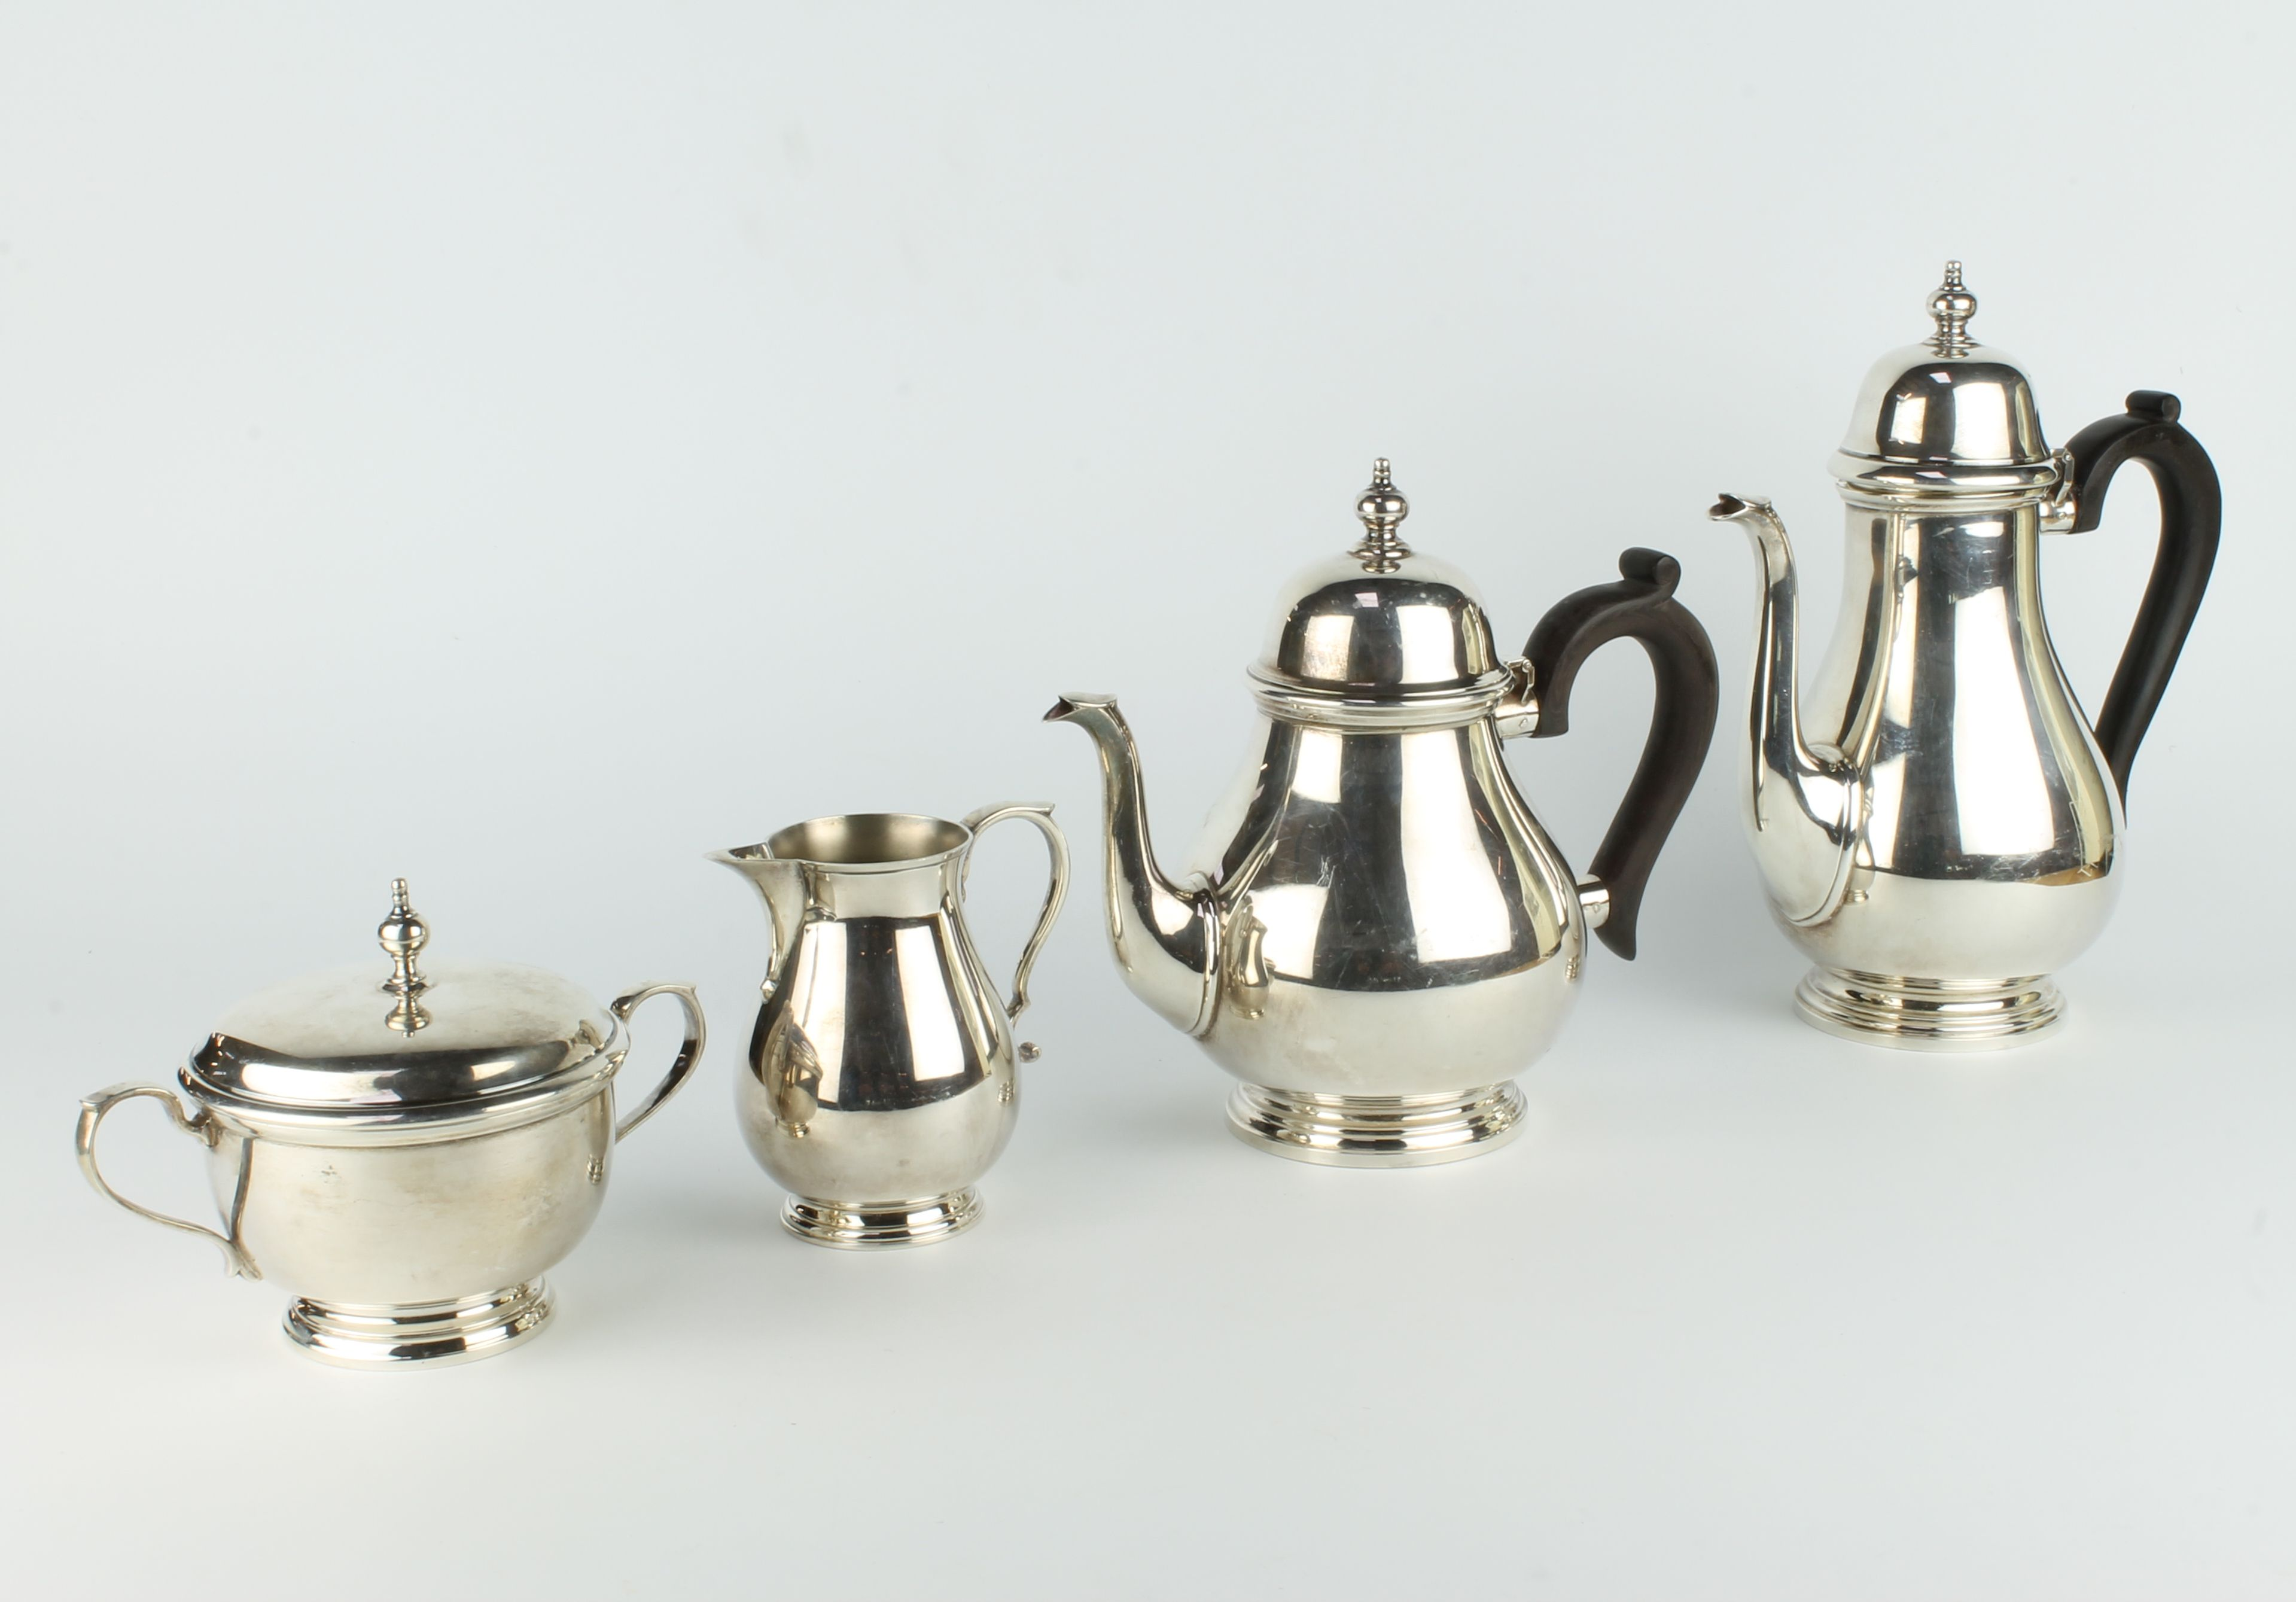 Lot 554 in our 28 march antique auction is this stunning